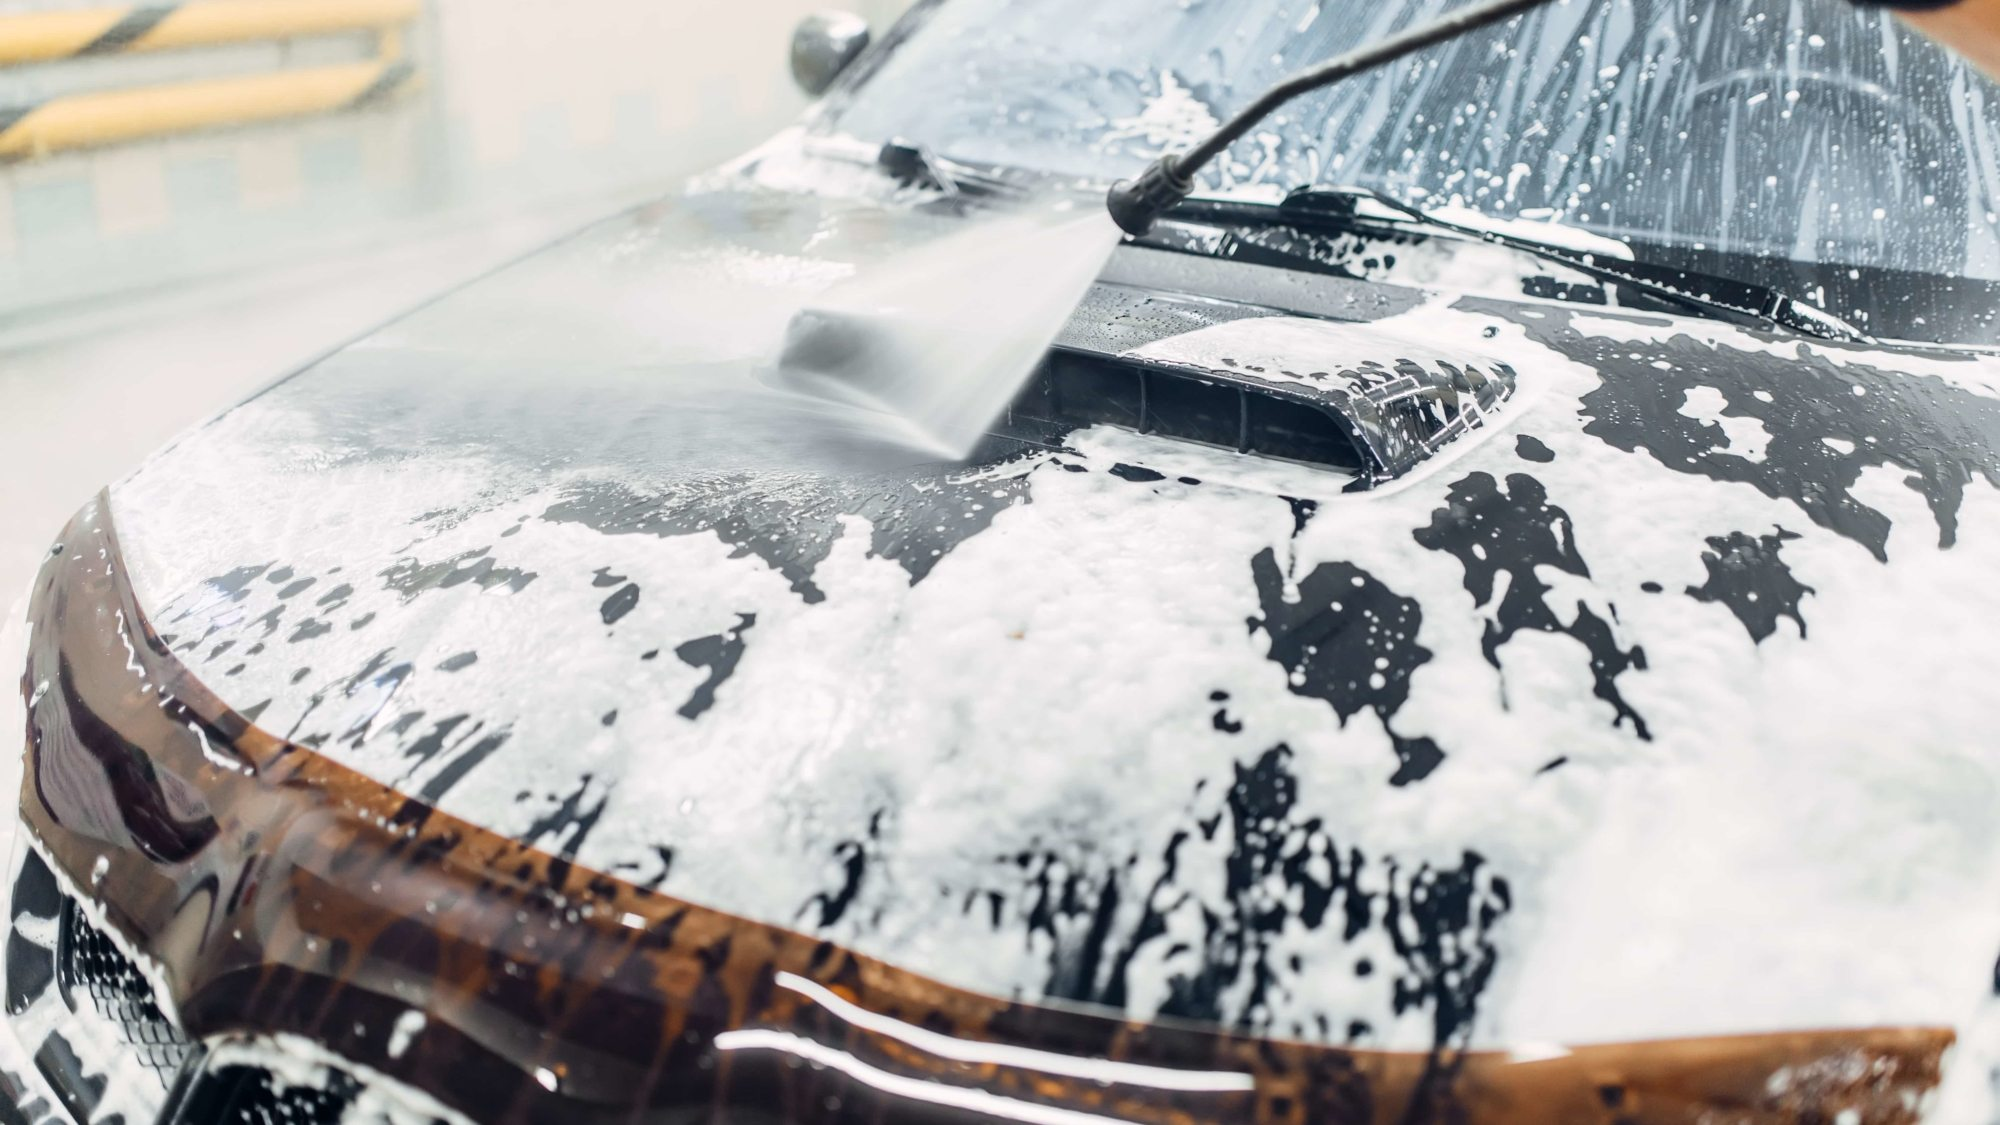 Carwash service, car cleaning, top view on hood. Auto detailing, washing foam off